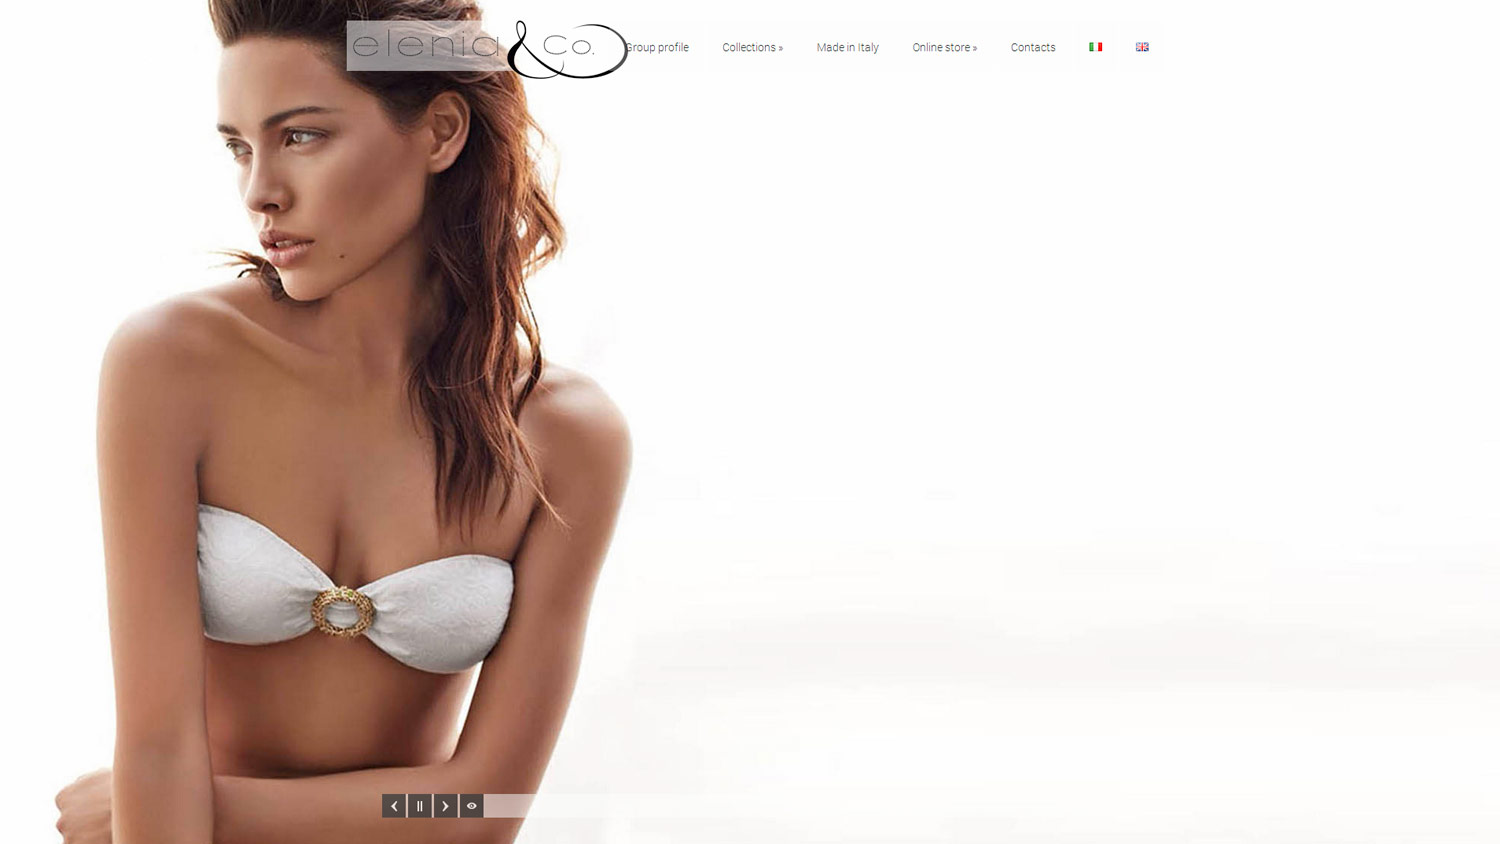 Playboy, Alessandro Dell'Acqua and Elenia Beachwear / website / 2014